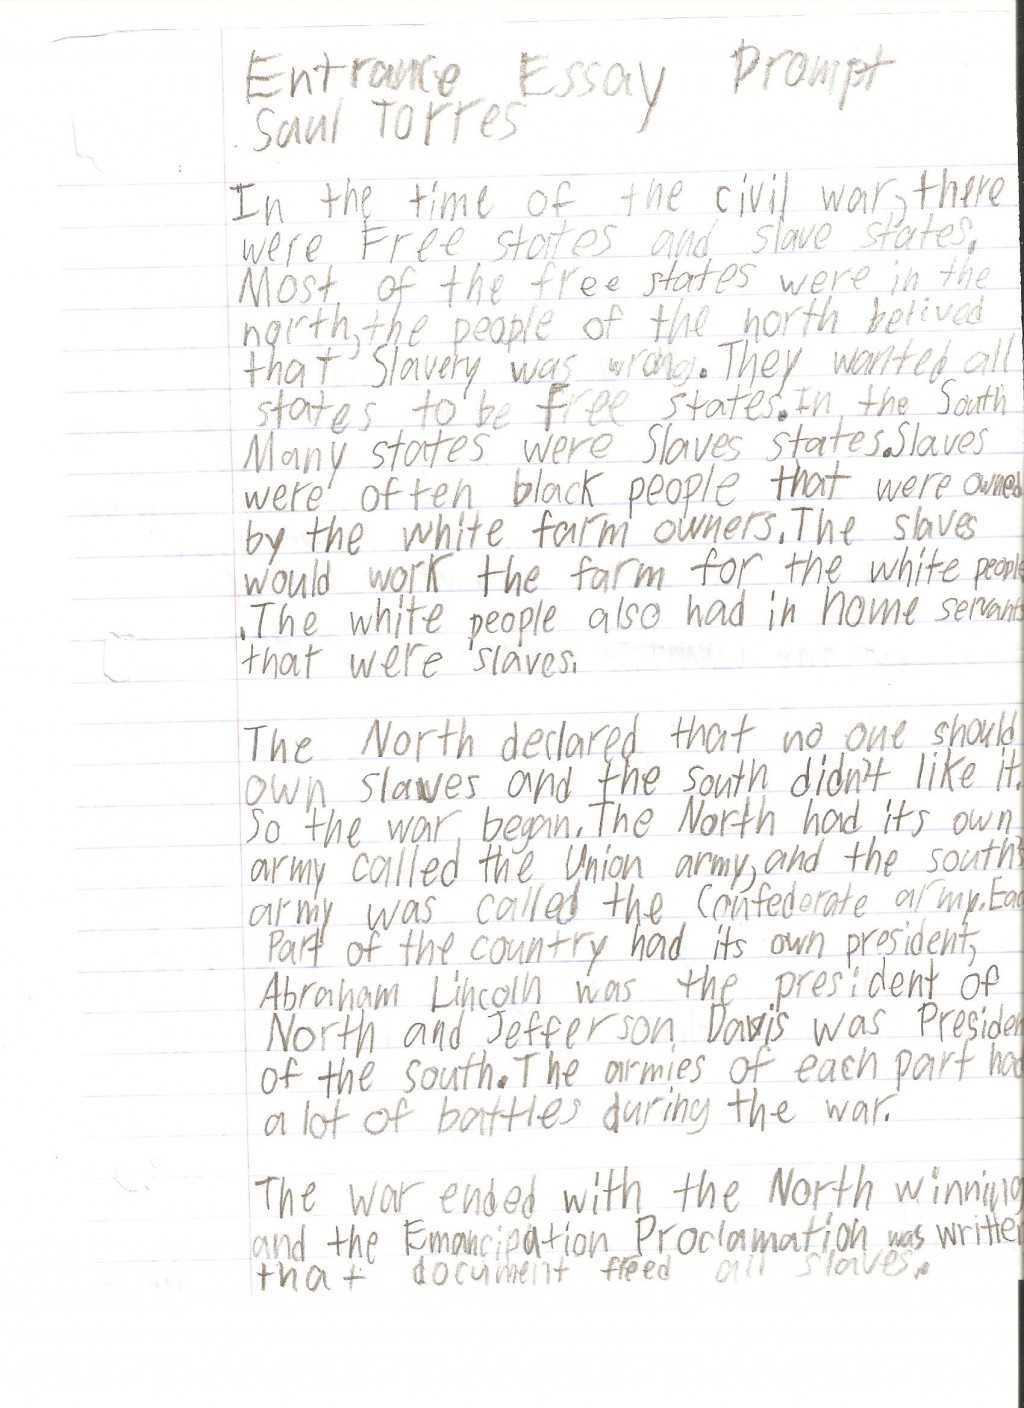 013 Concept Essay Example Saul Torres Fearsome On Racism Paper Examples Beauty Large